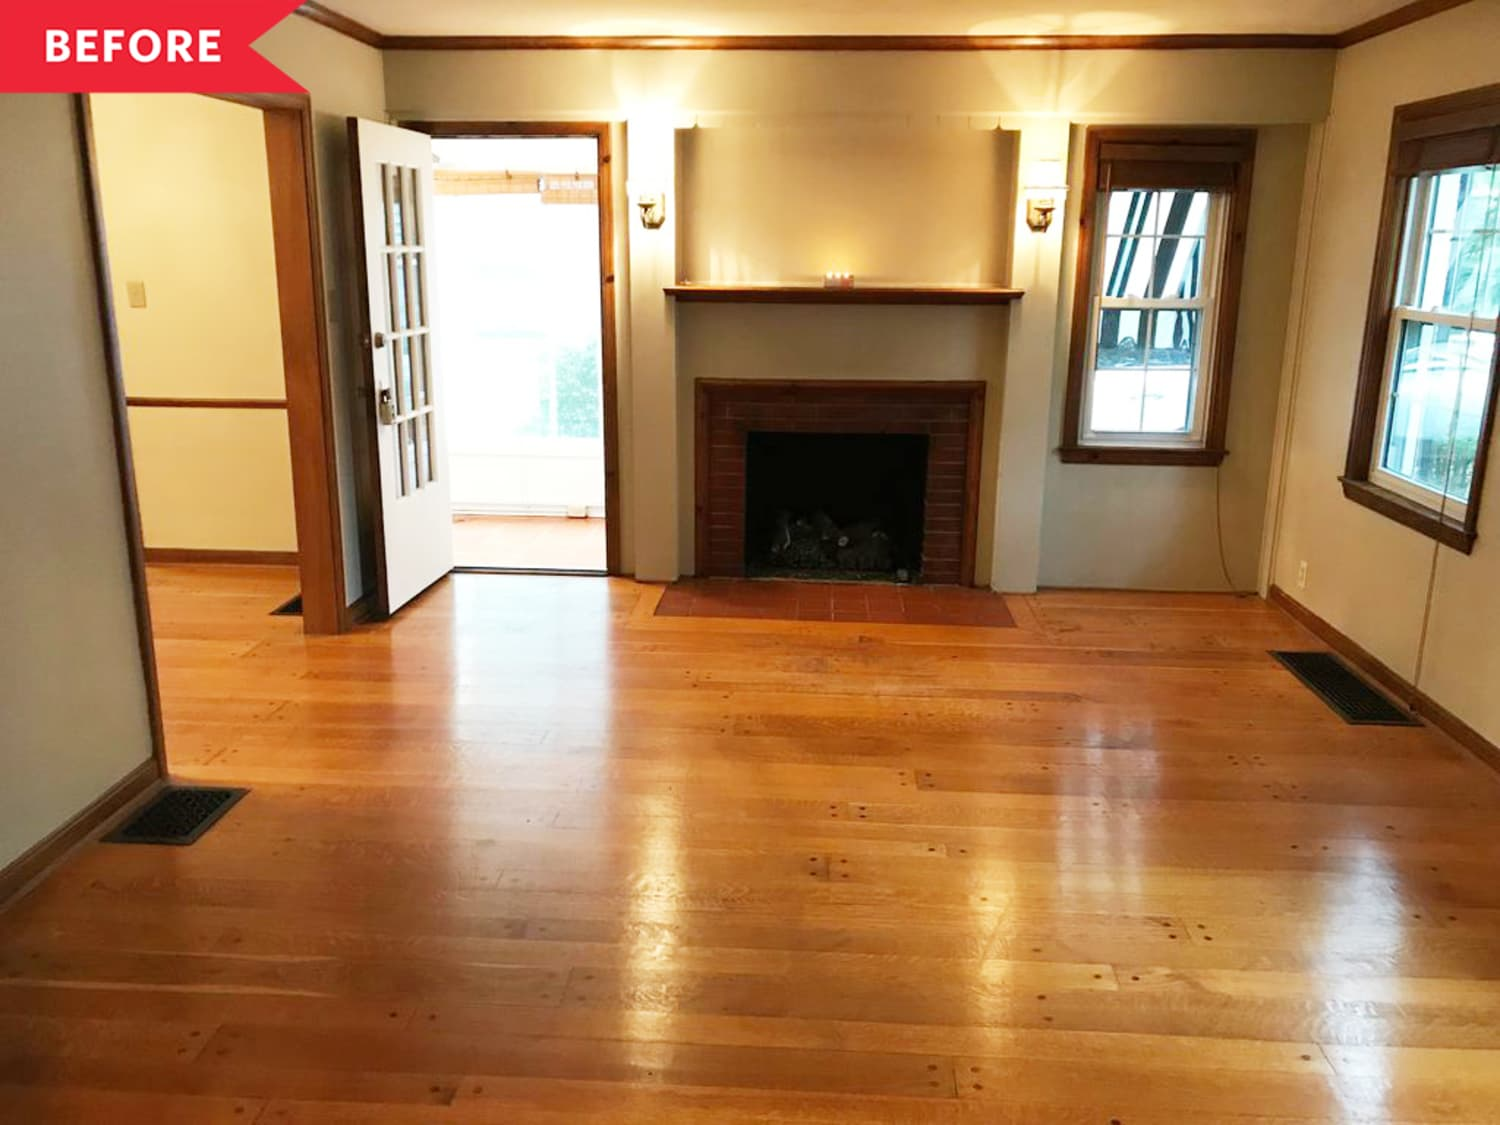 Before and After: This Dark, Dim Living Room Fireplace Goes Light and Bright